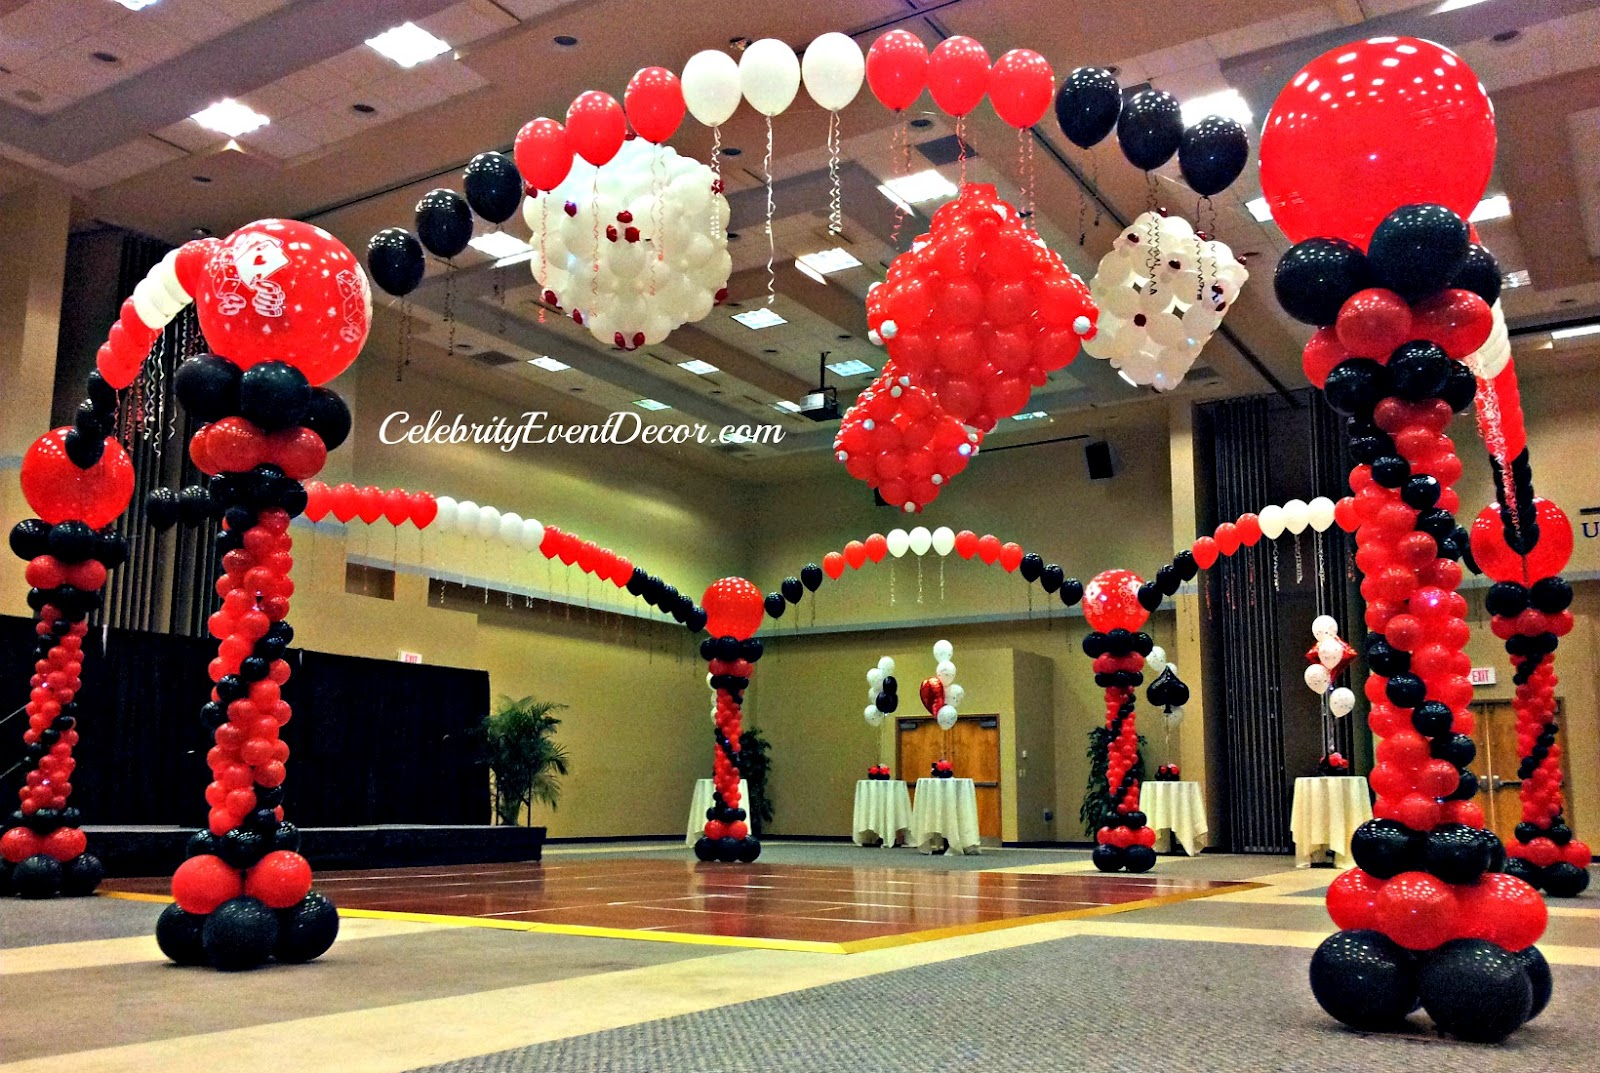 Celebrity Event Decor, LLC